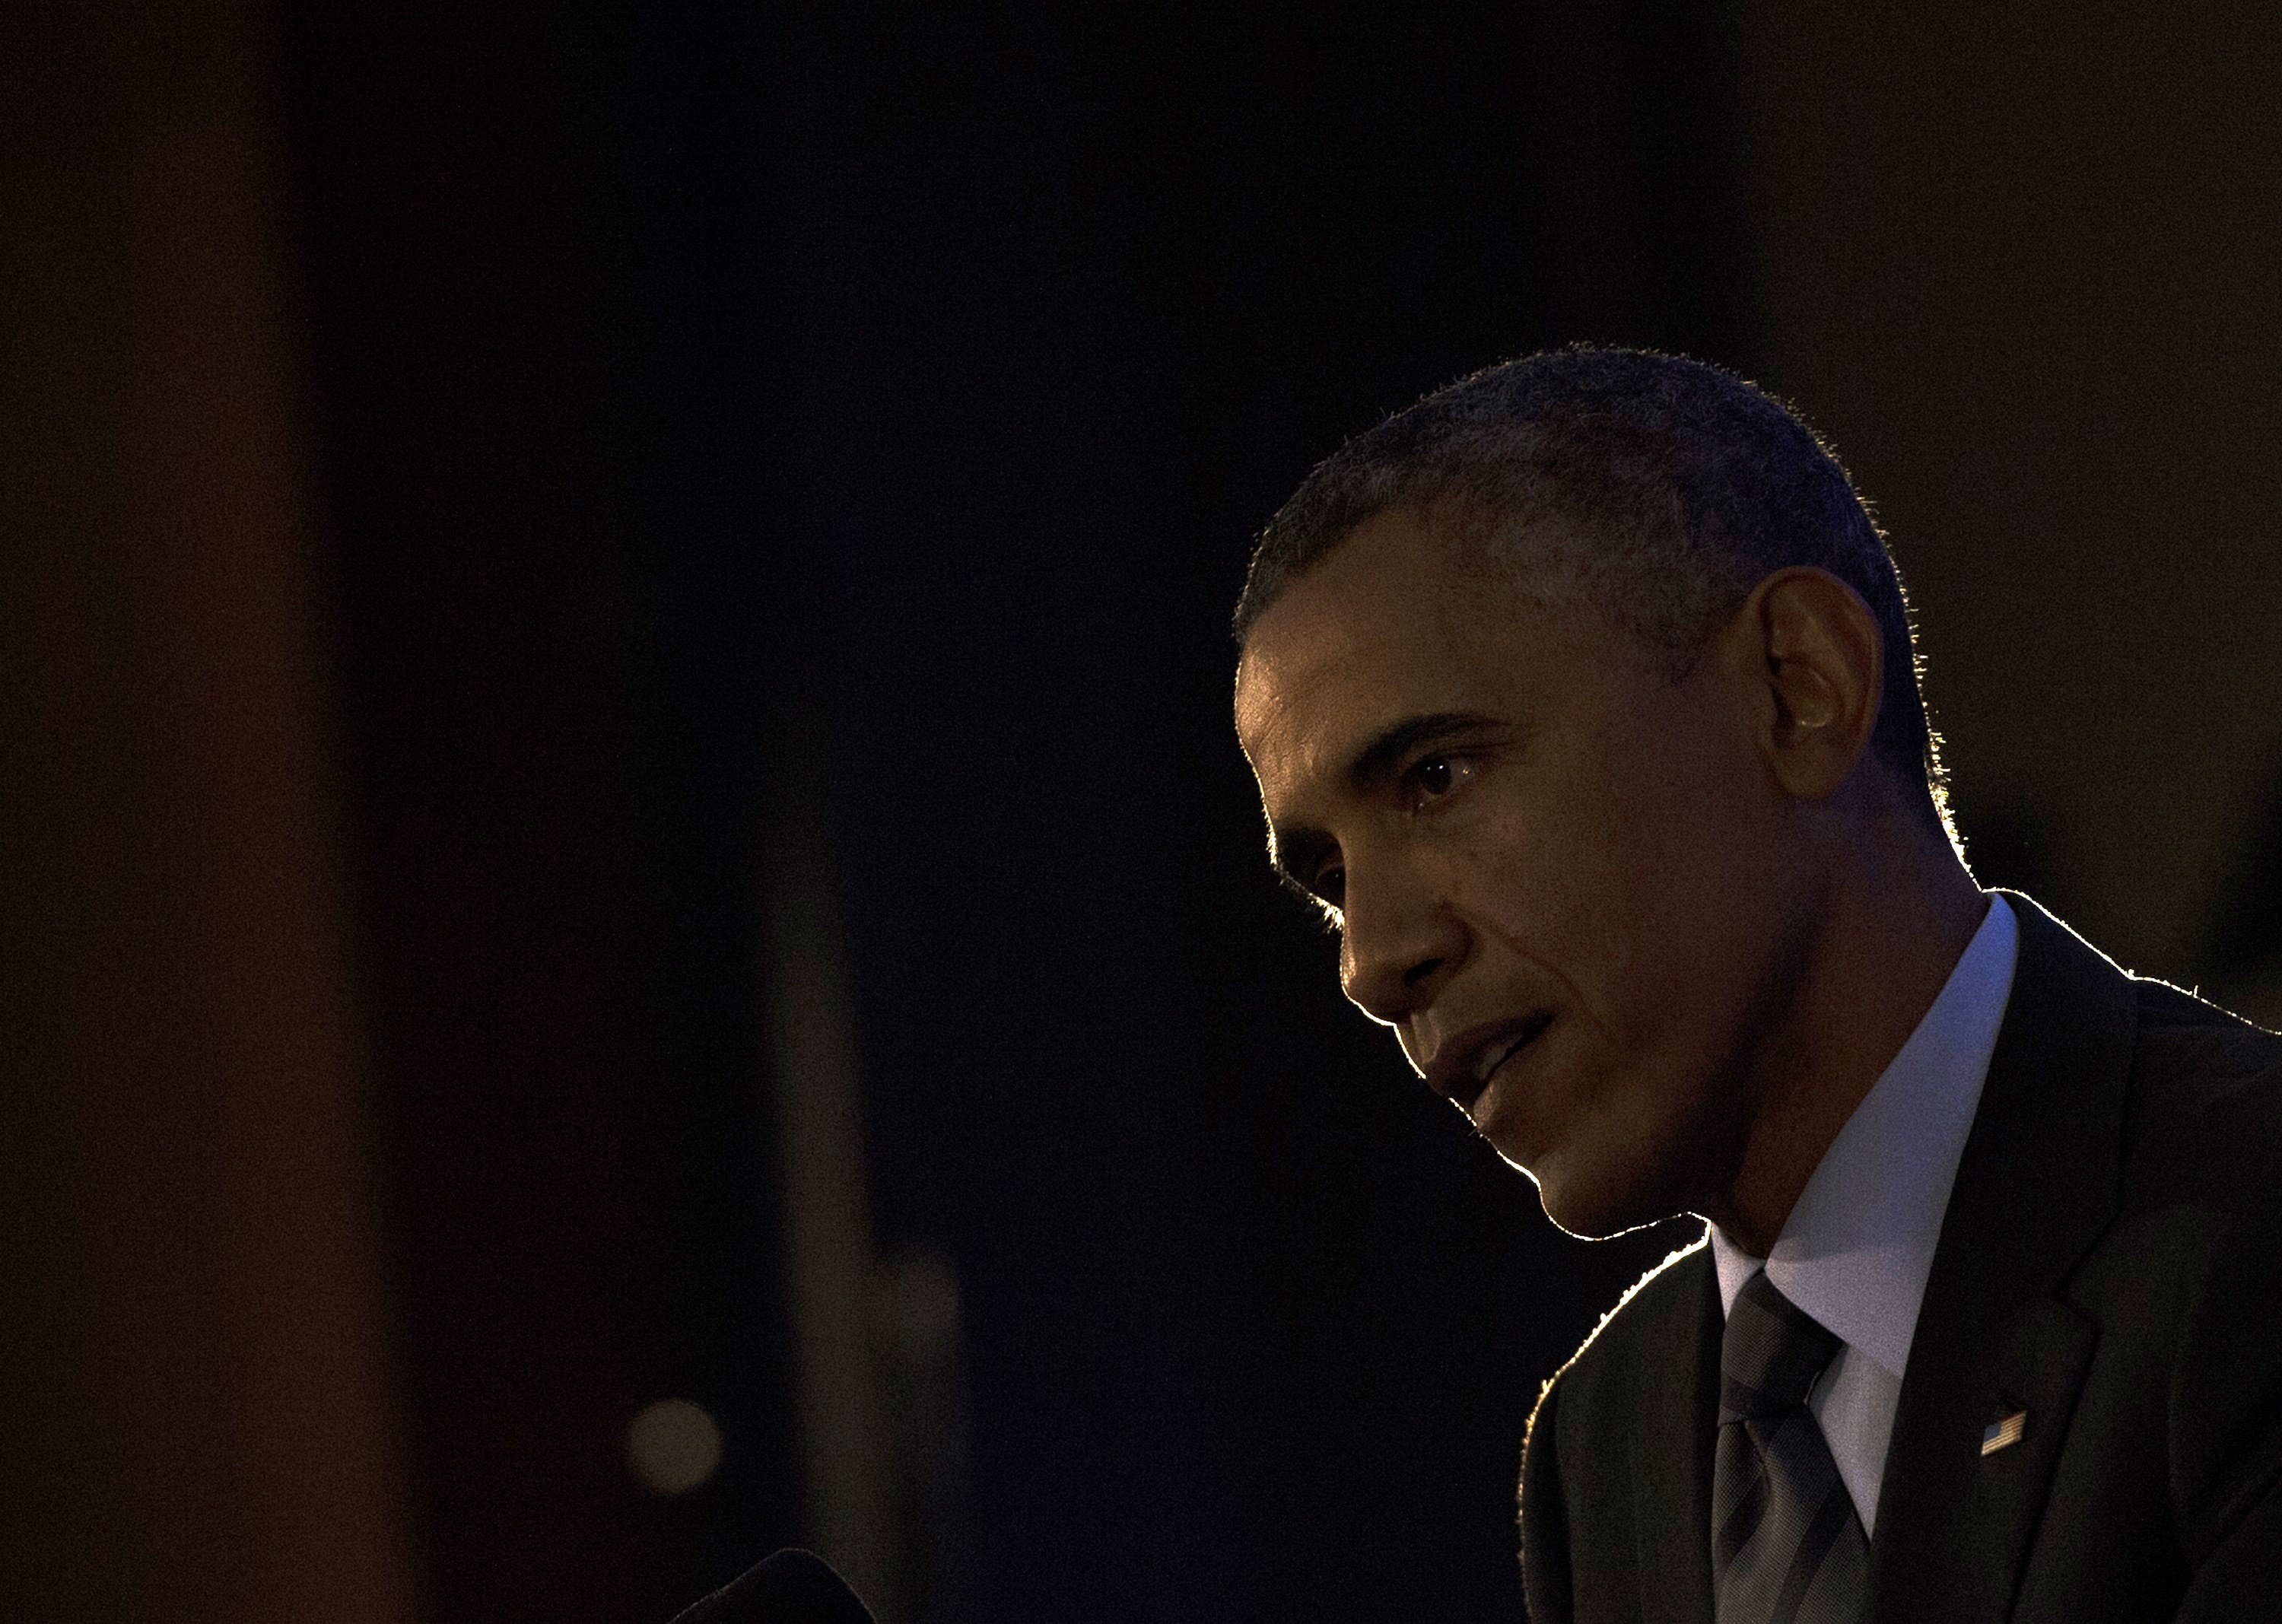 US President Barack Obama speaks during a press conference at the conclusion of the US - Africa Leaders Summit at the US State Department in Washington on August 6, 2014.